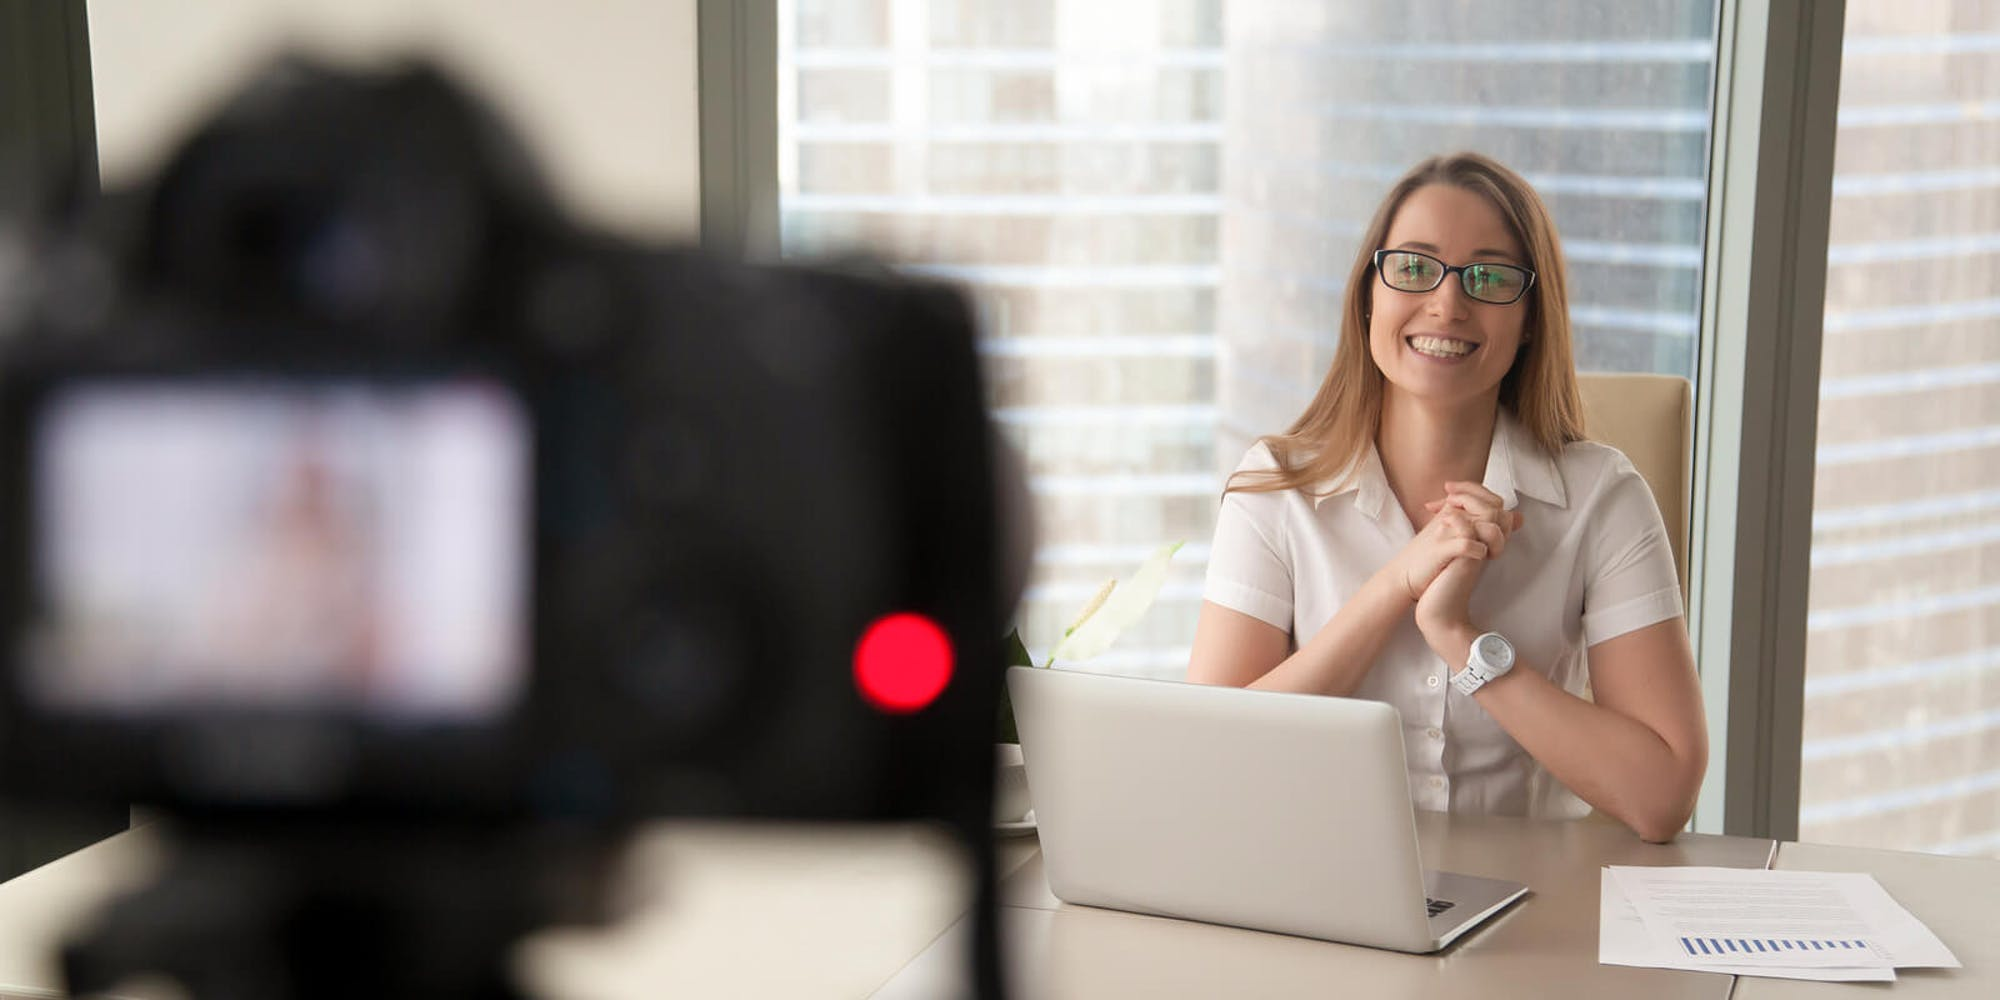 A woman filming a video of herself speaking at a desk